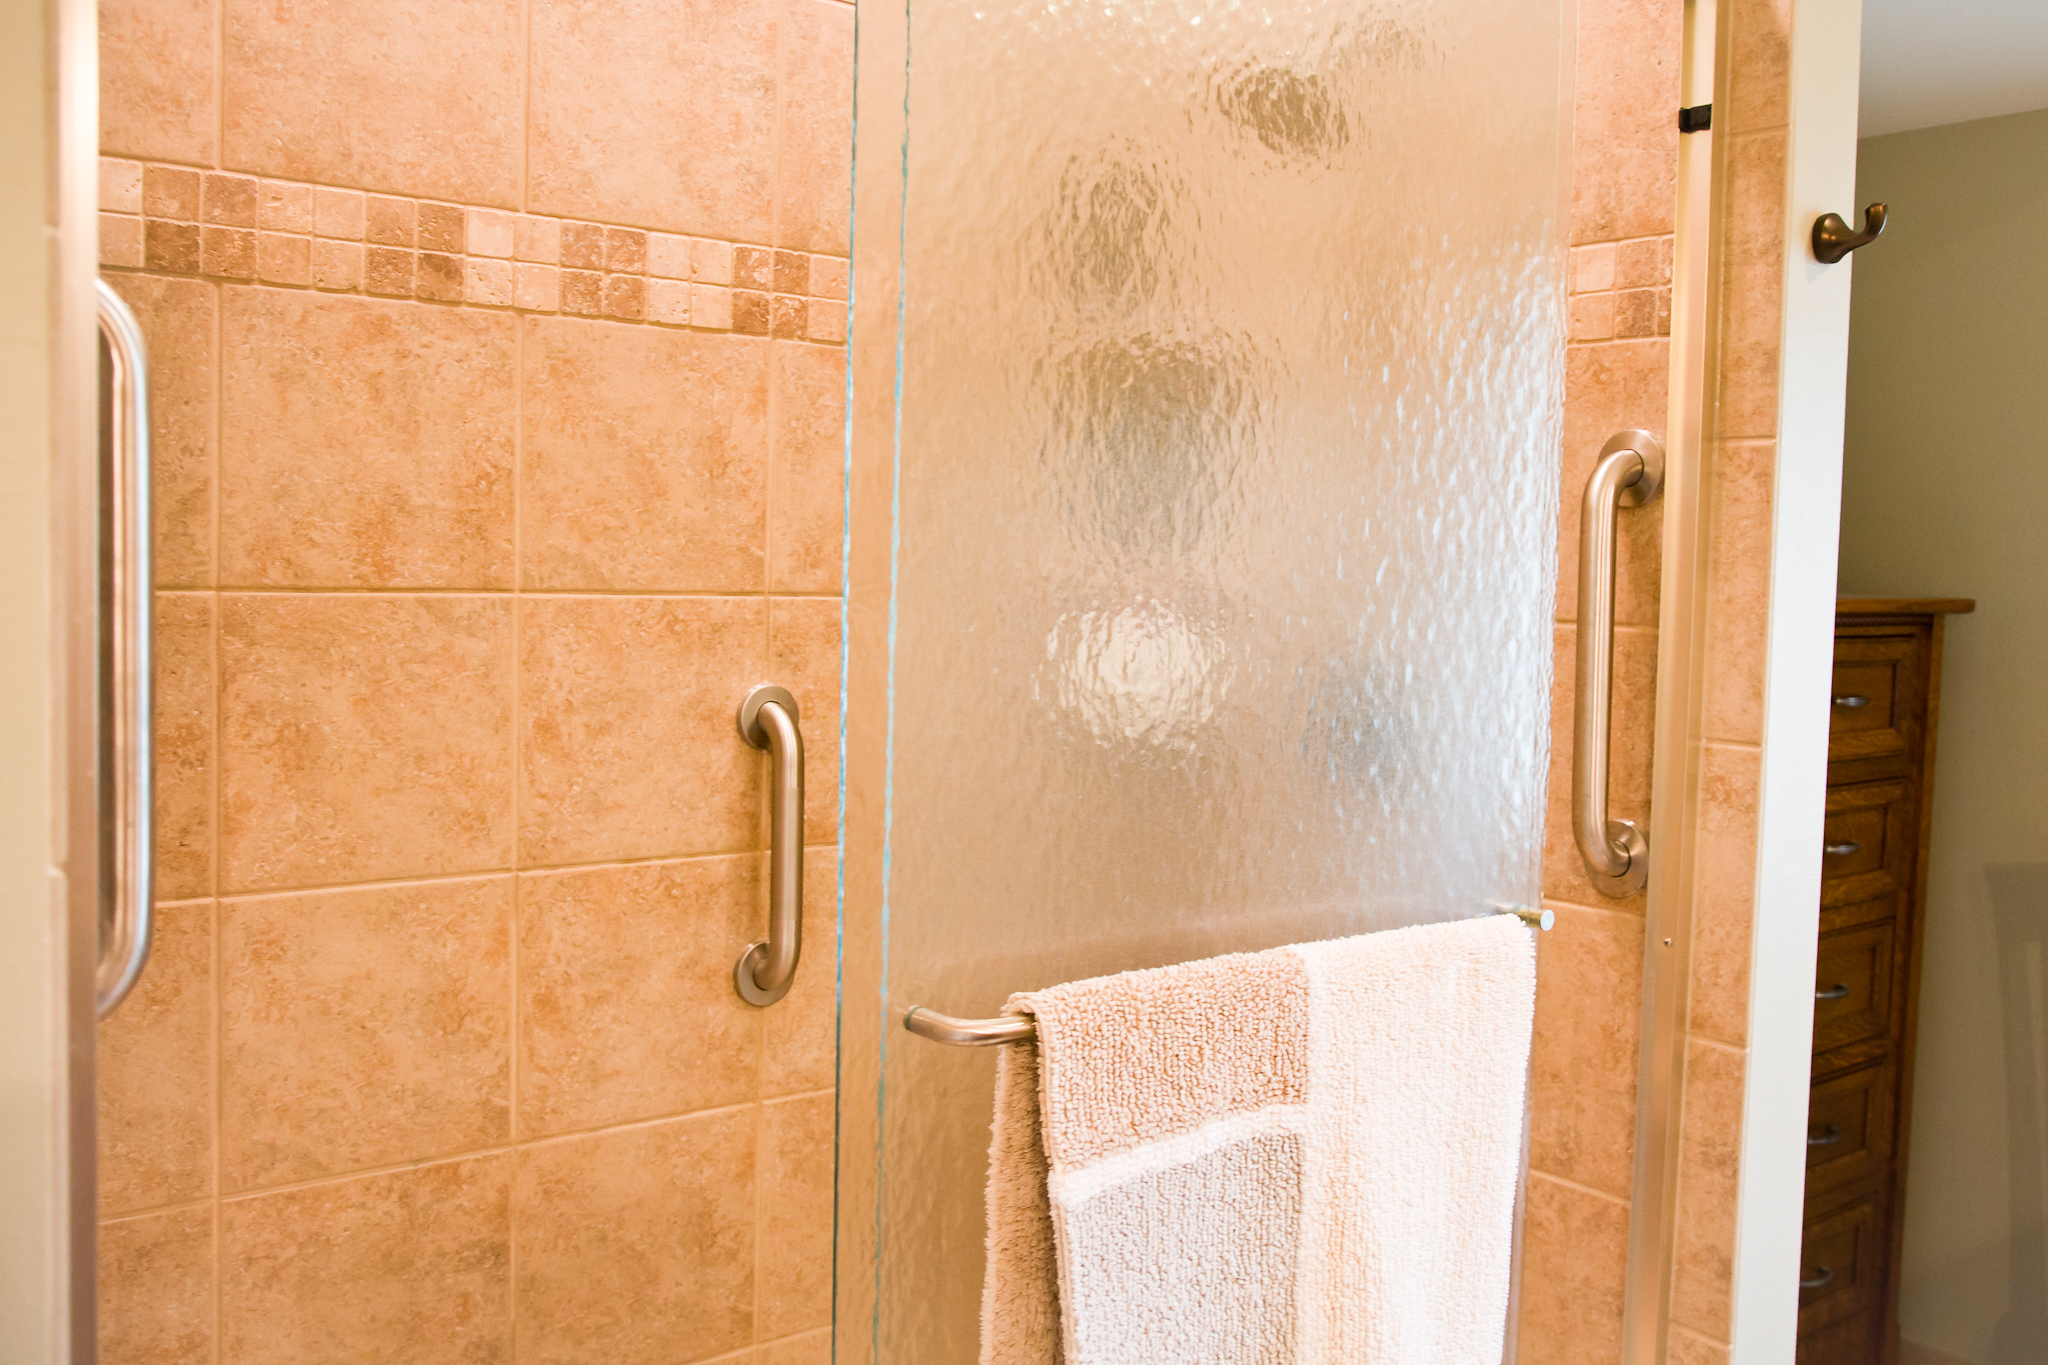 Bathrooms | Accessibility Remodeling Waukesha | Smart Accessible ...